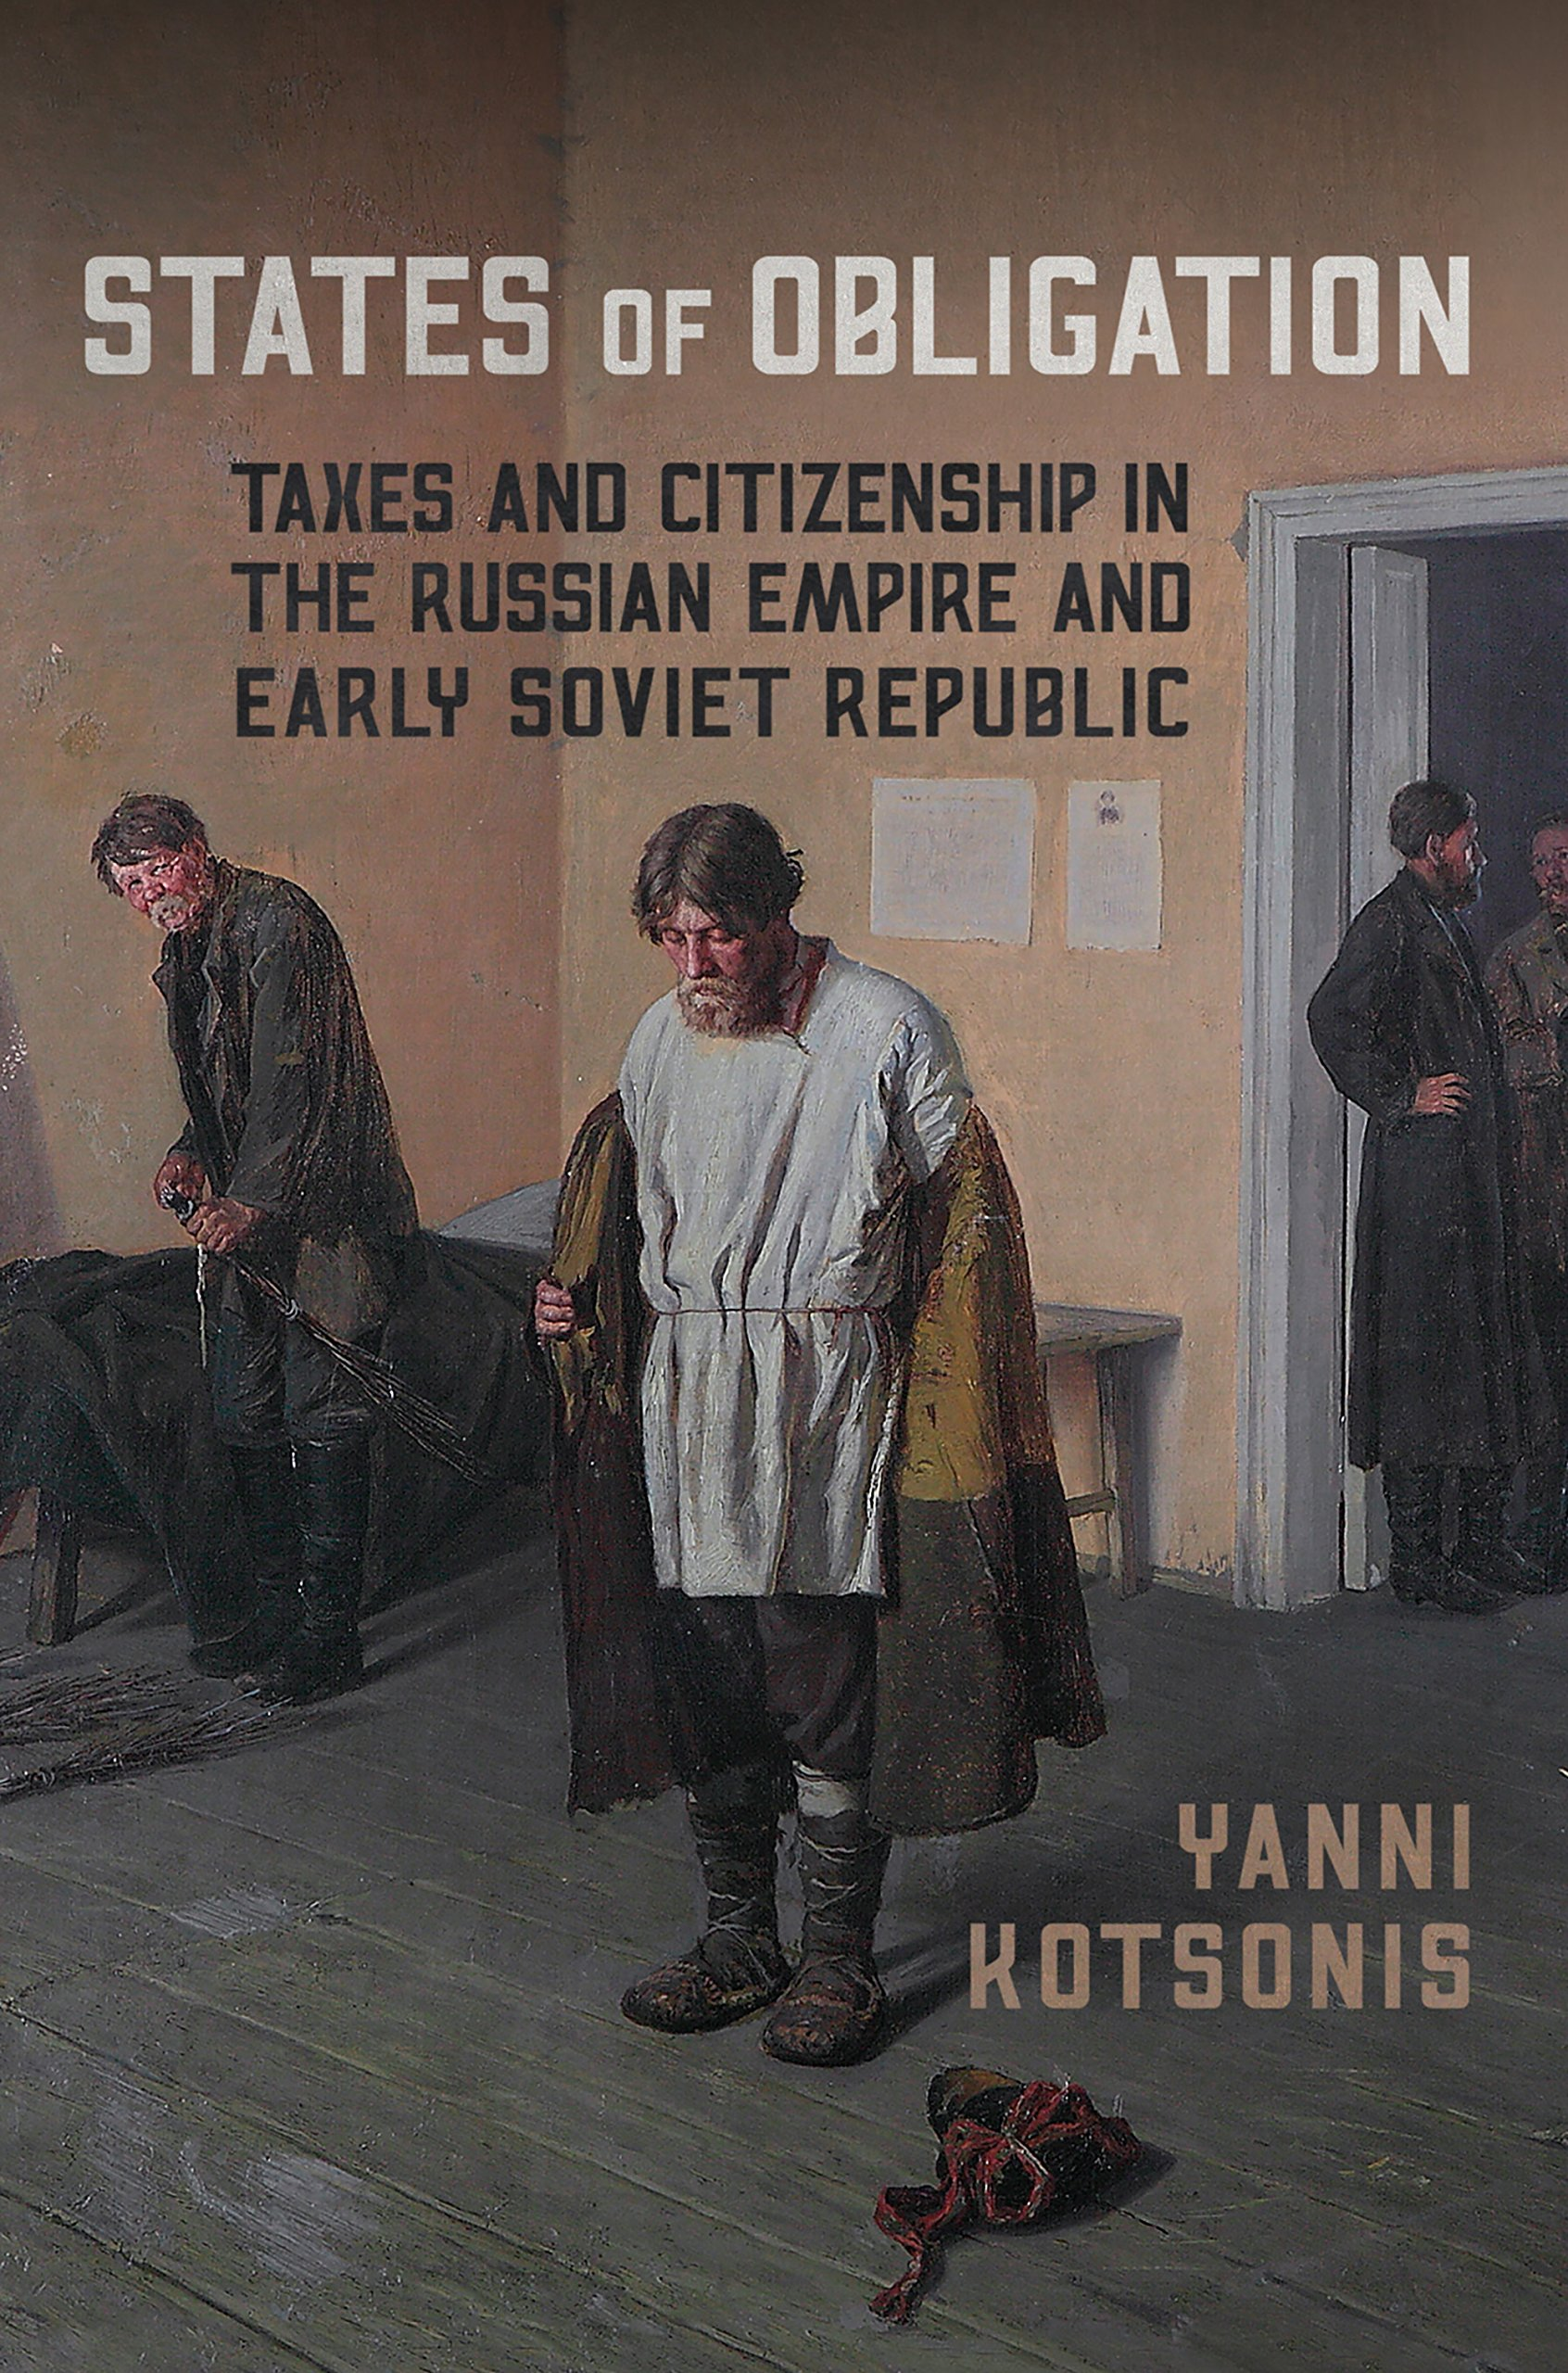 States of Obligation: Taxes and Citizenship in the Russian